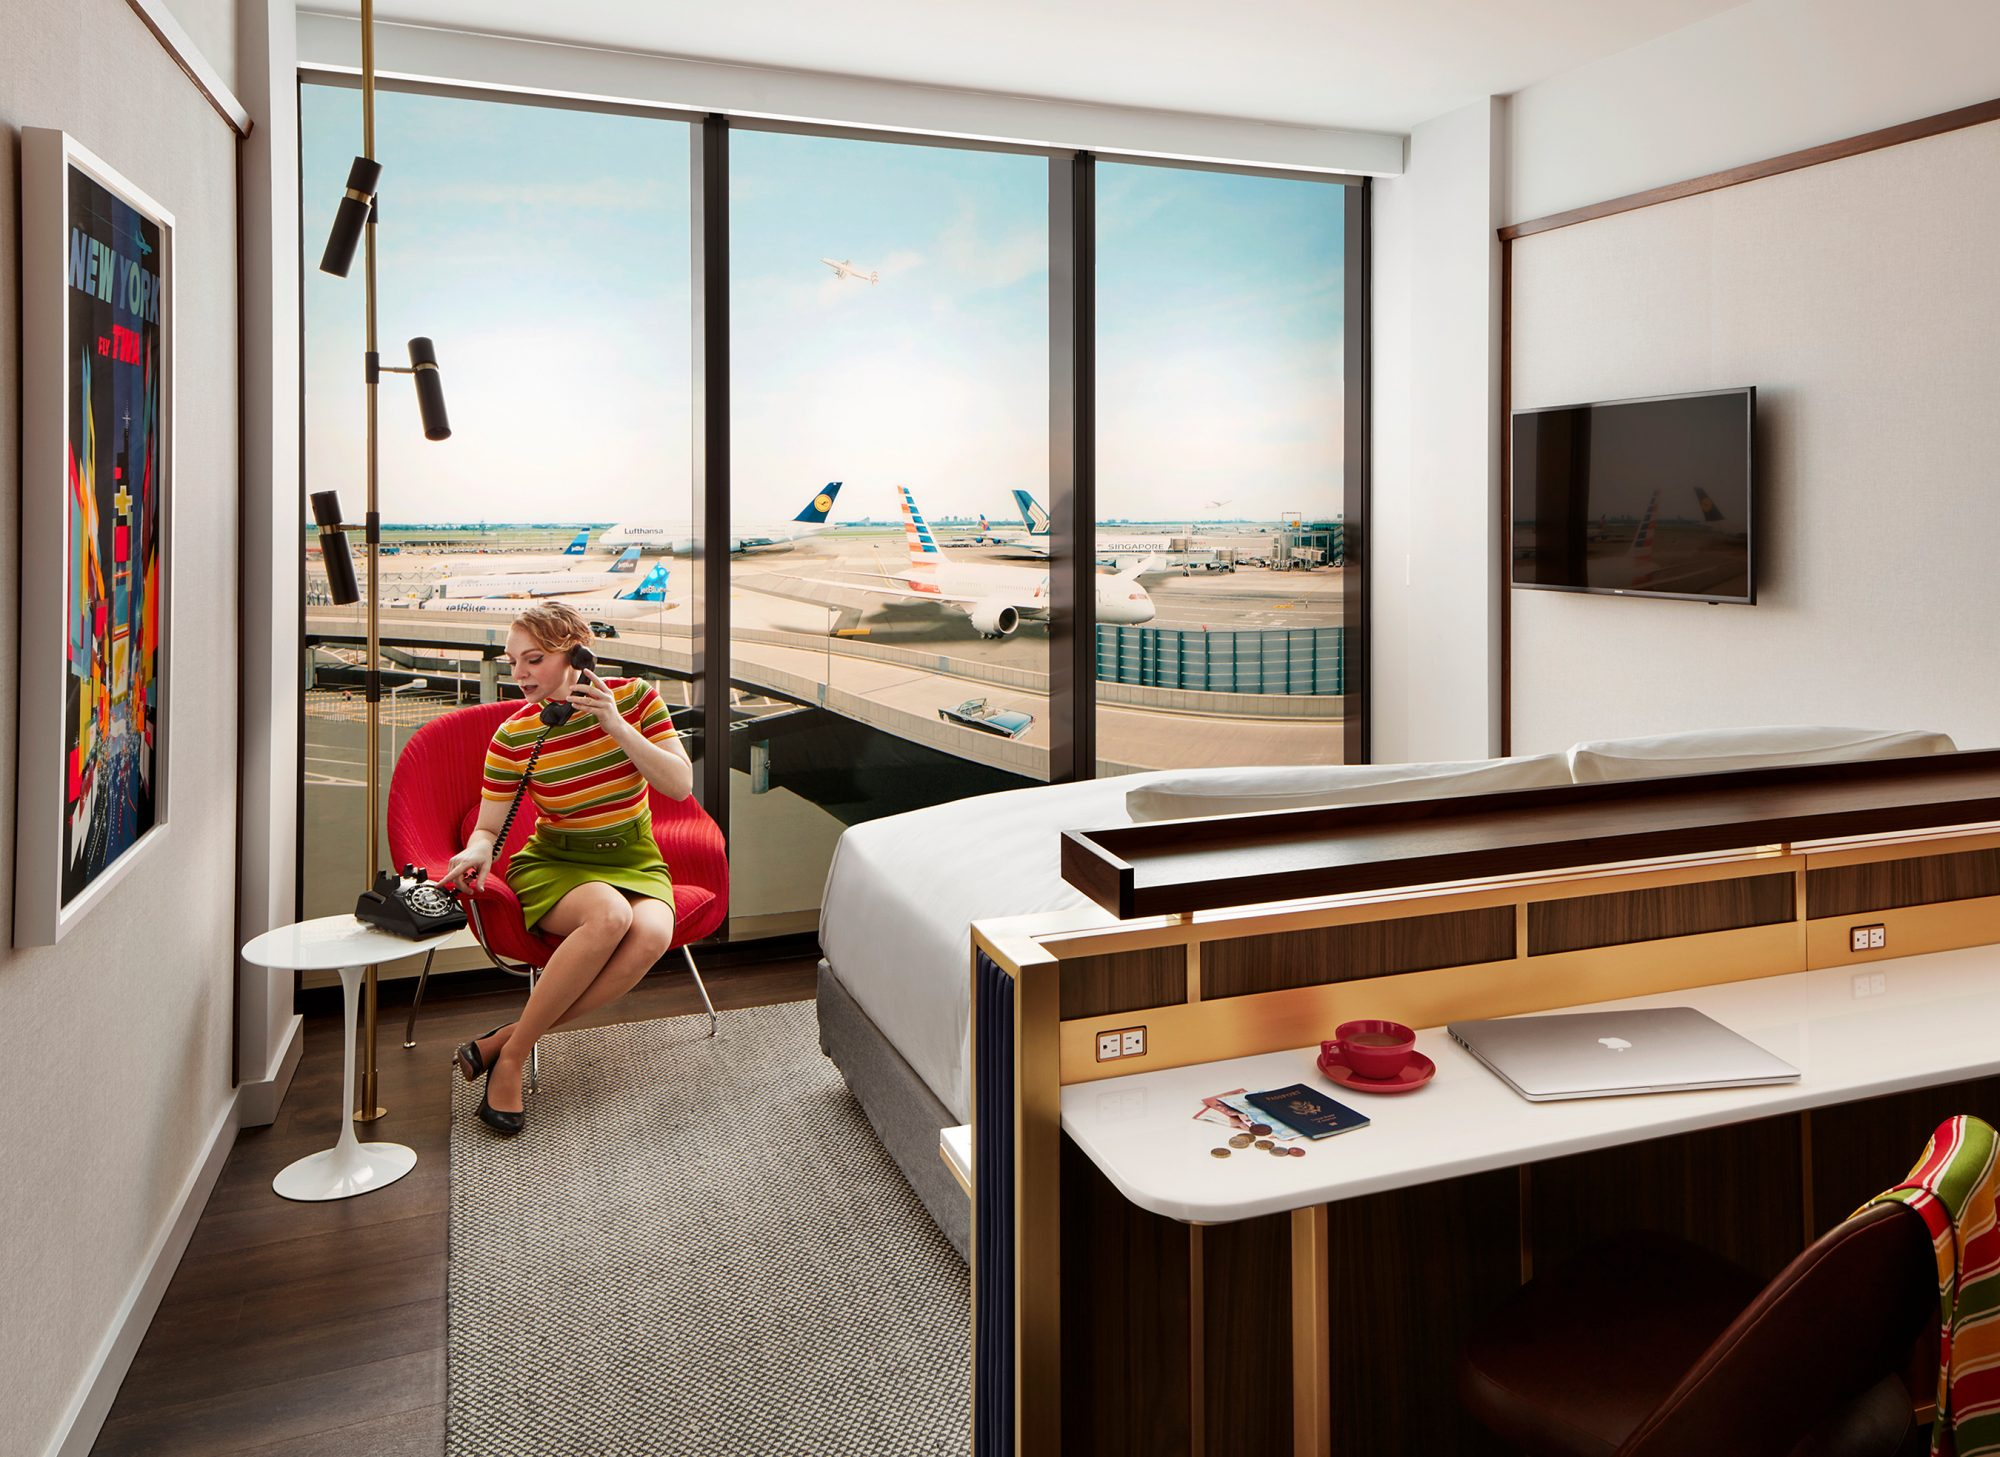 TWA's 1960s flight center, designed by architect Eero Saarinen, closed in 2001, along with the airline. Renovated as a hotel, it has 512 rooms. Rates start at $249 per night, or you can book a four-hour stay for $139.